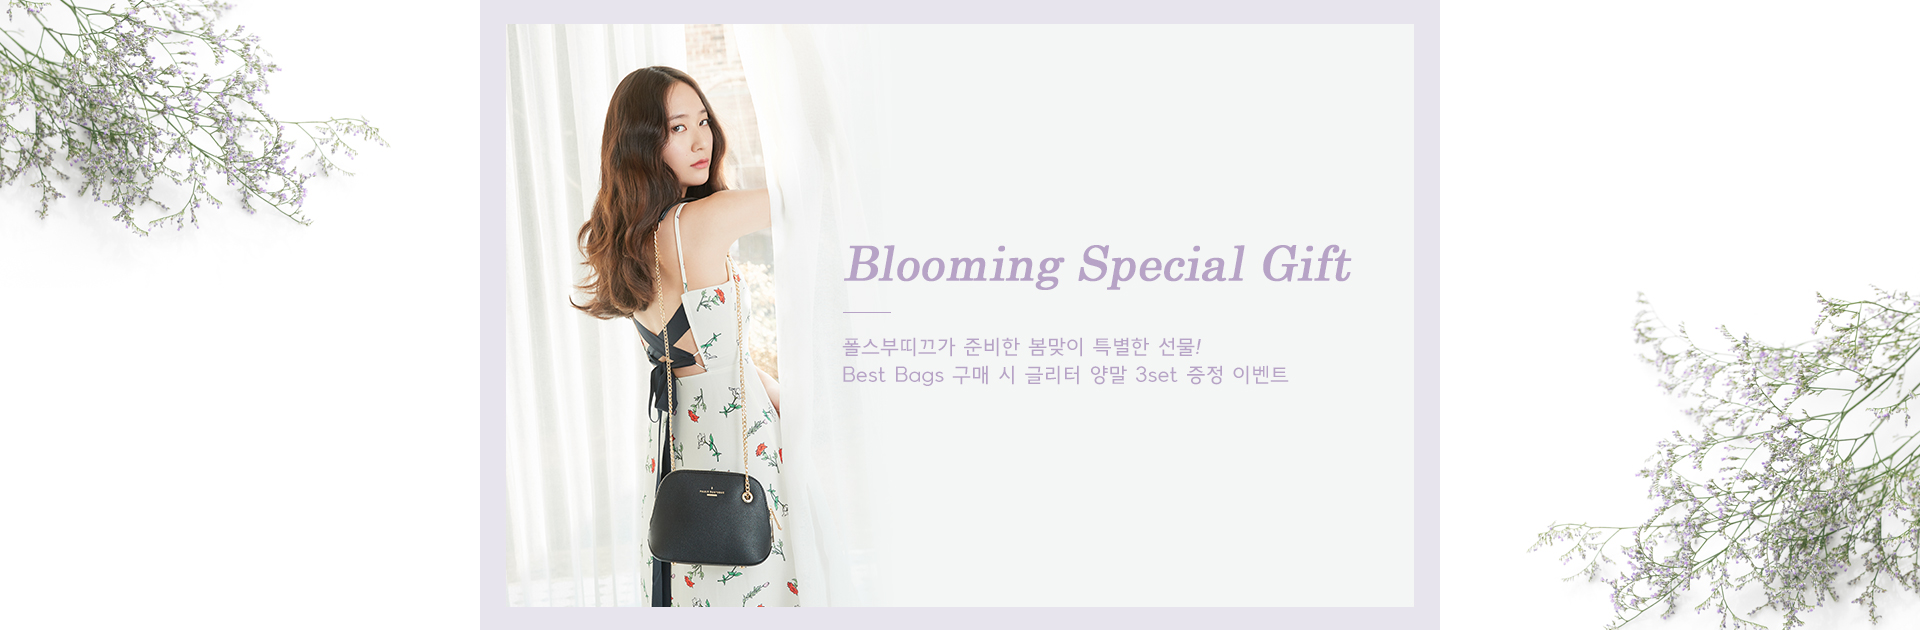 BLOOMING SPECIAL GIFT